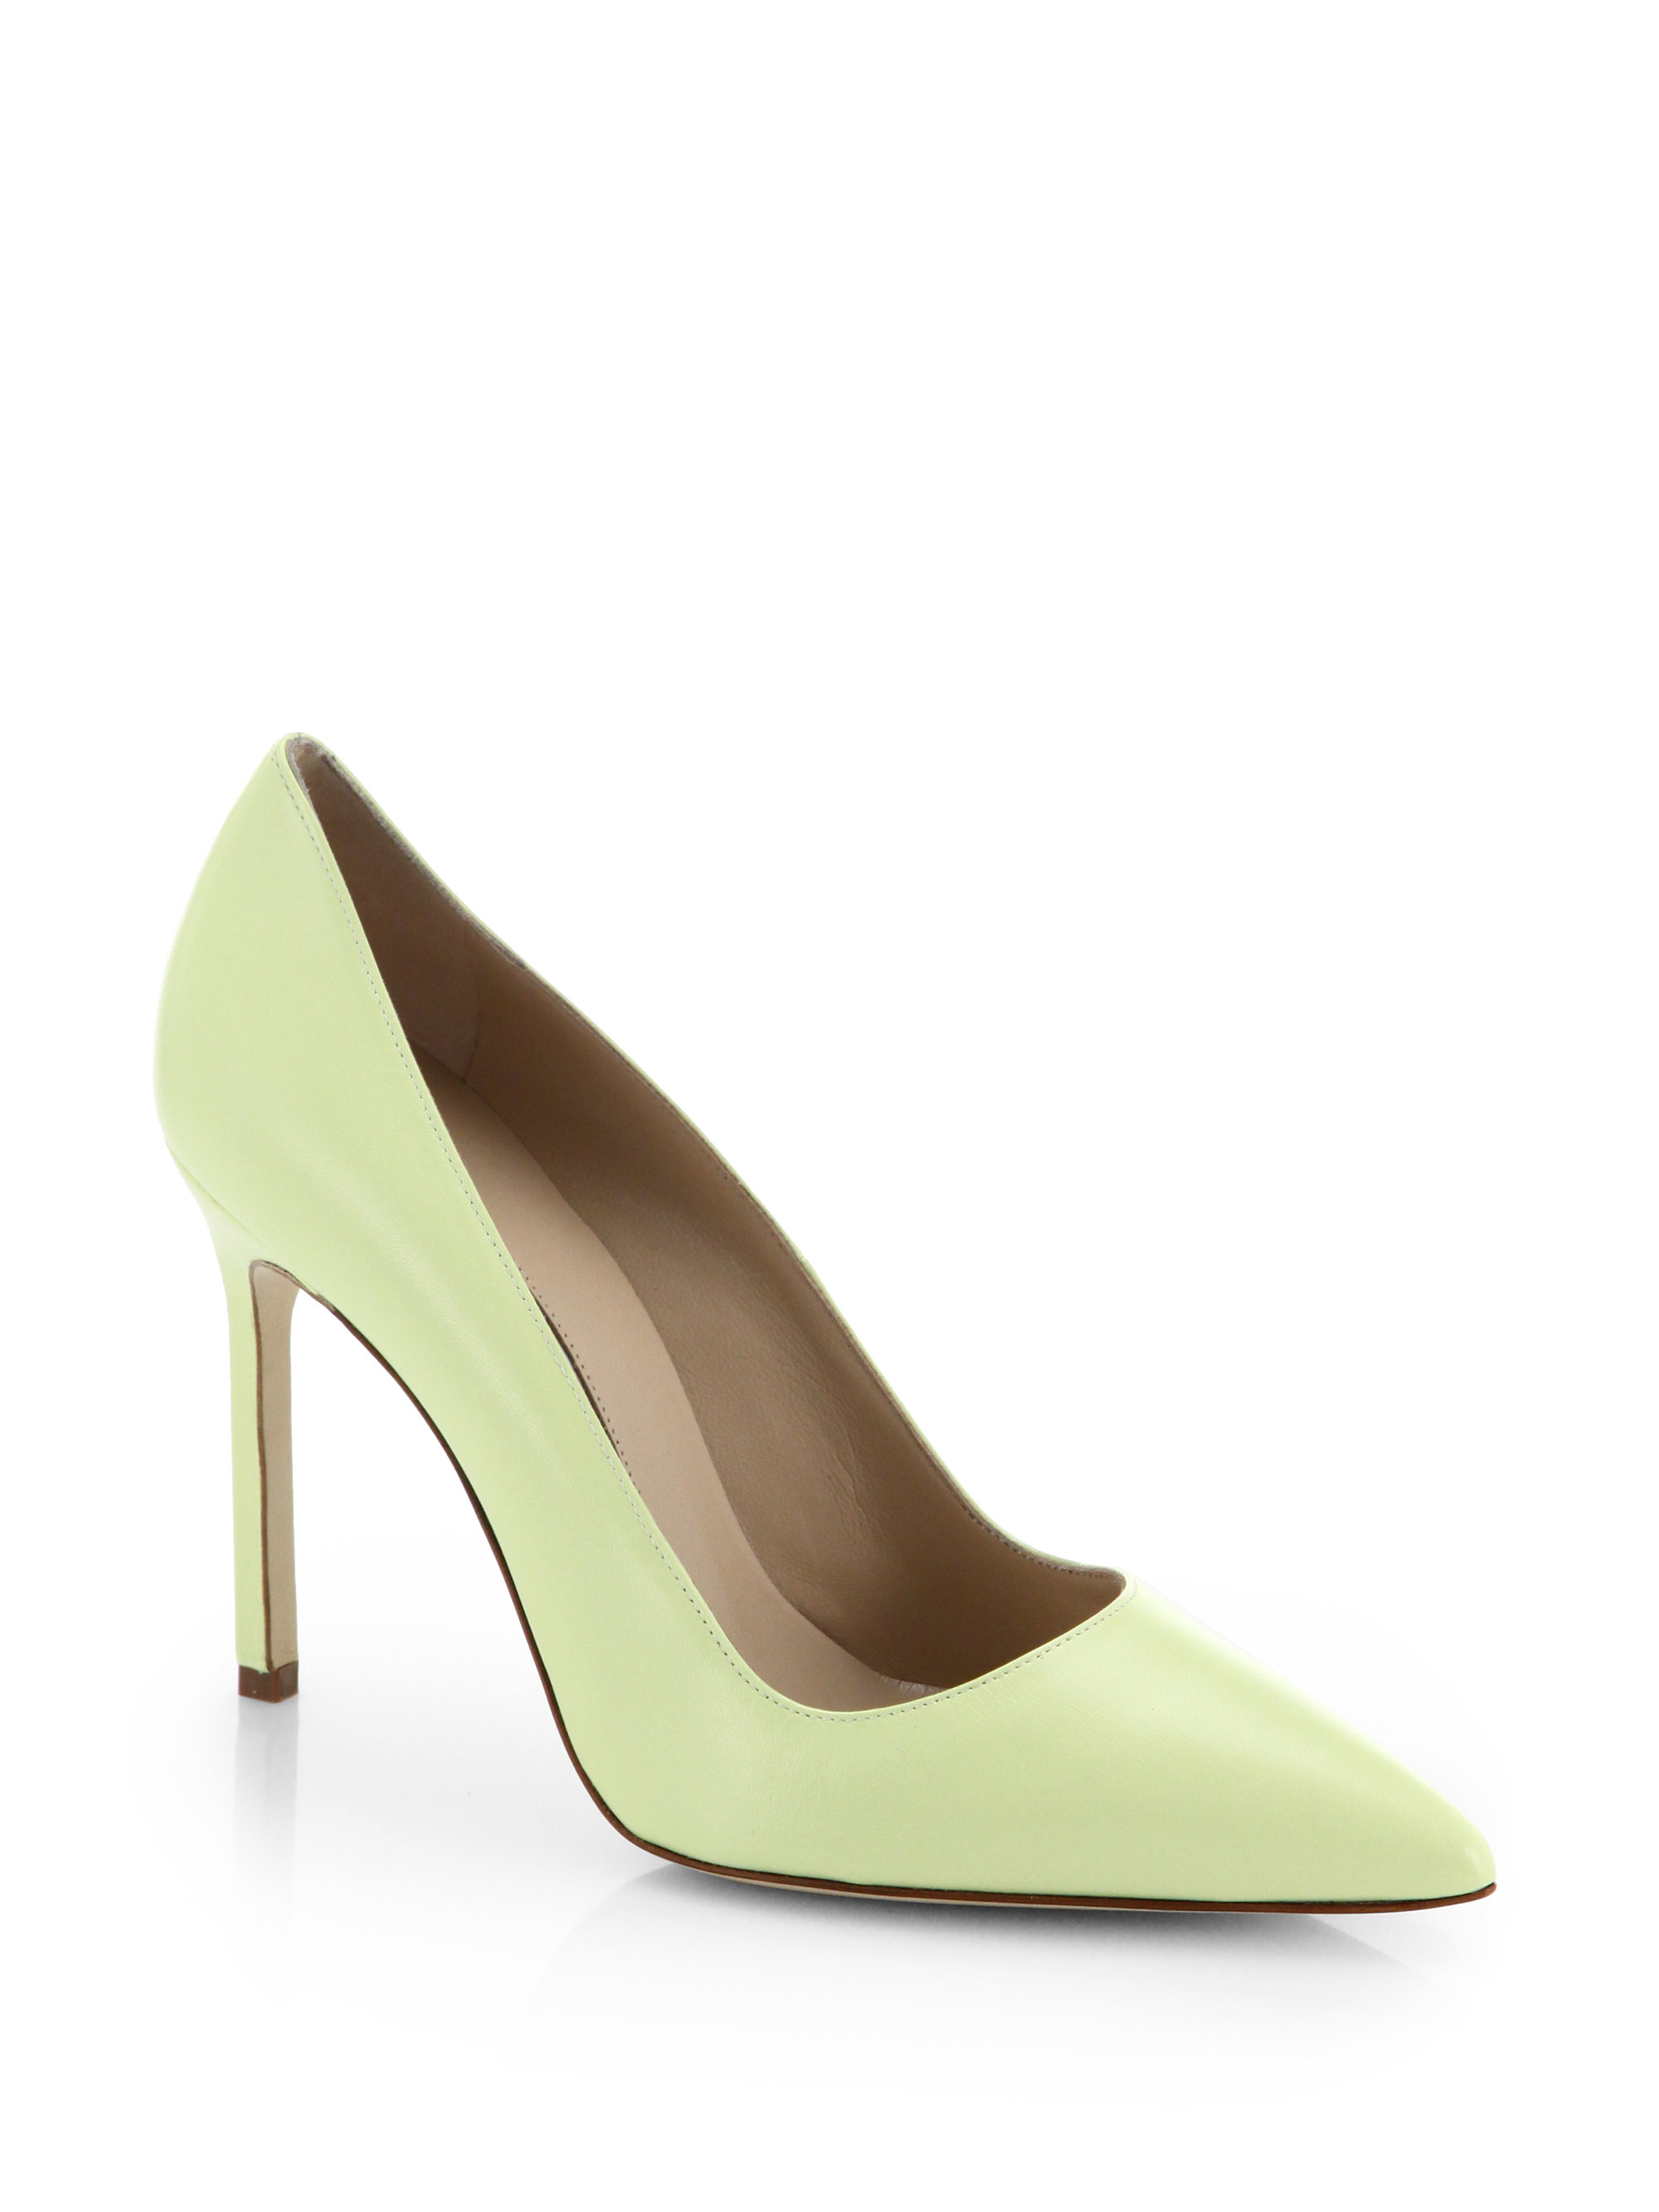 Manolo Blahnik Nappa Leather Point Toe Pumps In Yellow Lyst